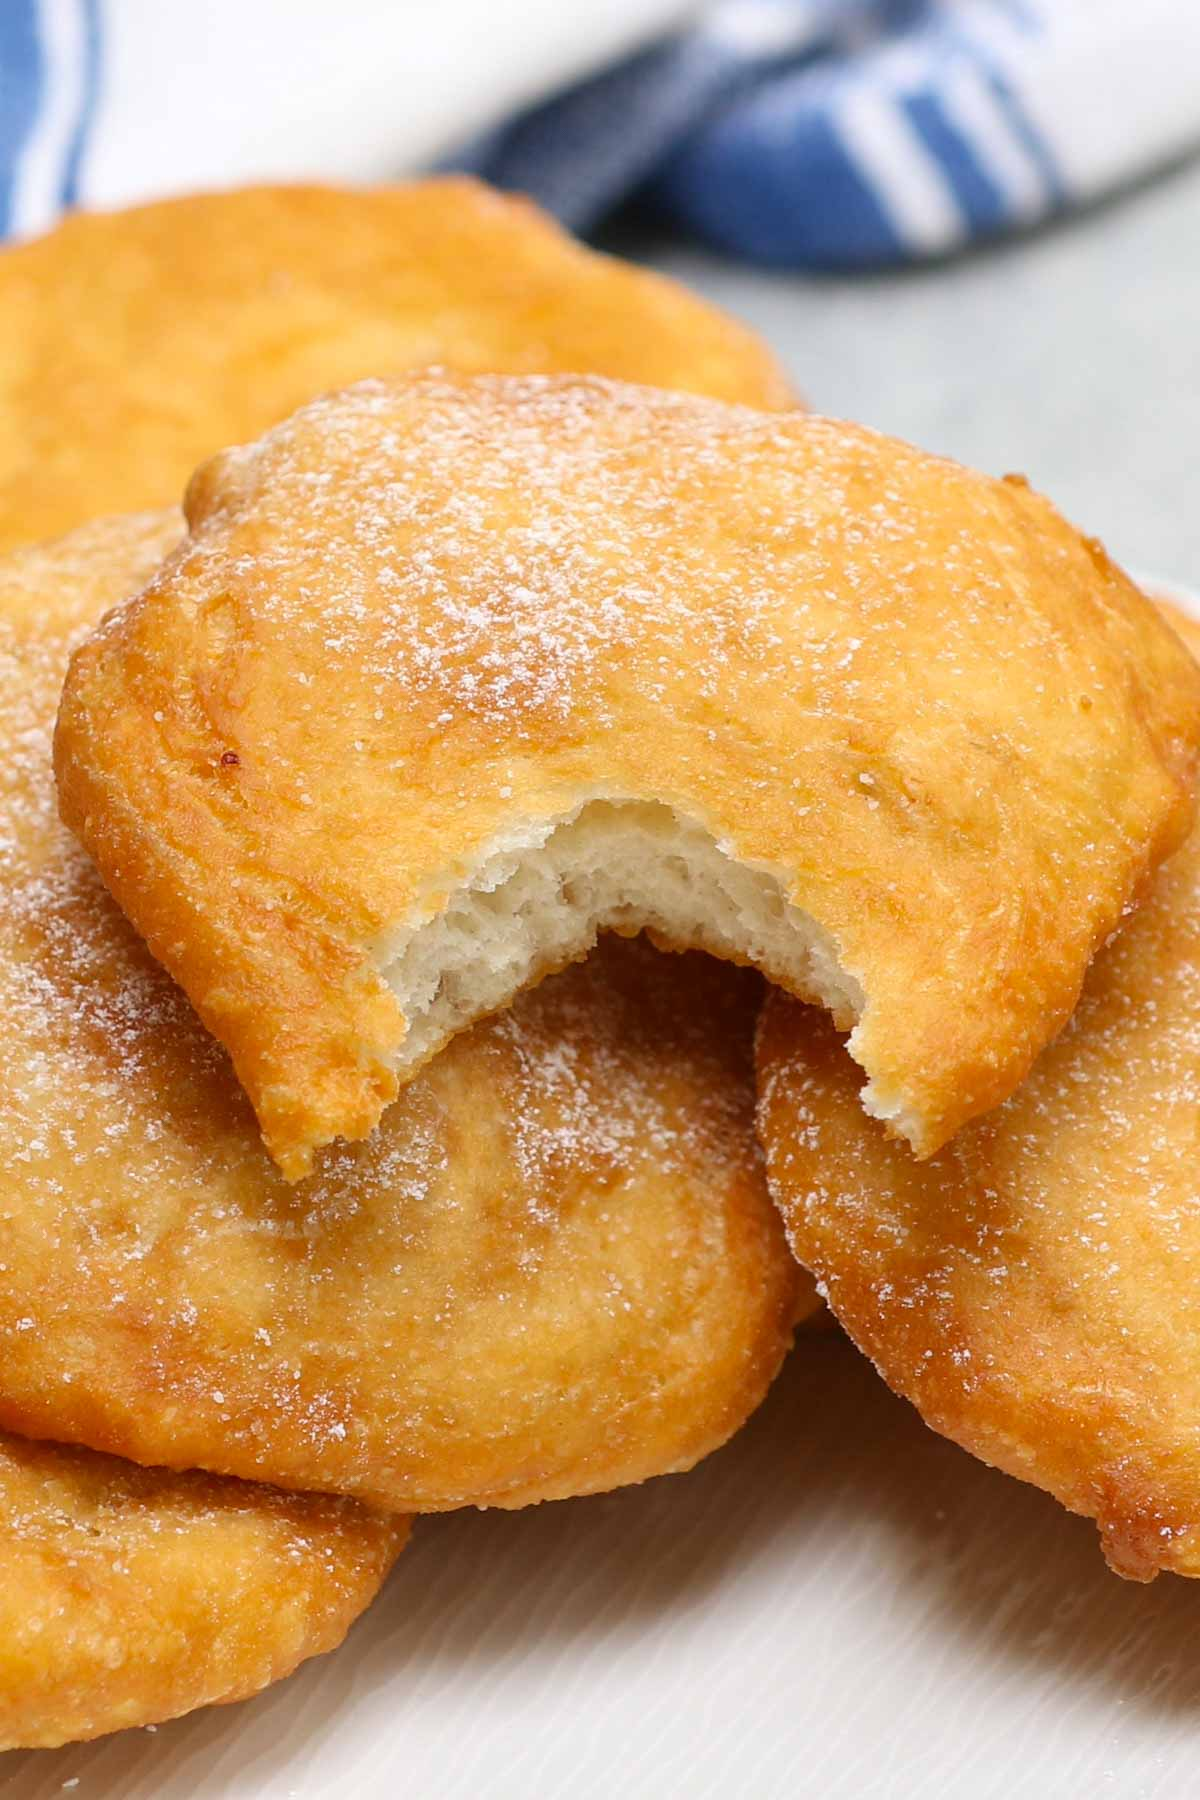 If you want to recreate the experience of a county fair or amusement park at home, there's no easier way than with Fried Dough. This simple treat is a popular street food that is often enjoyed at outdoor activities.